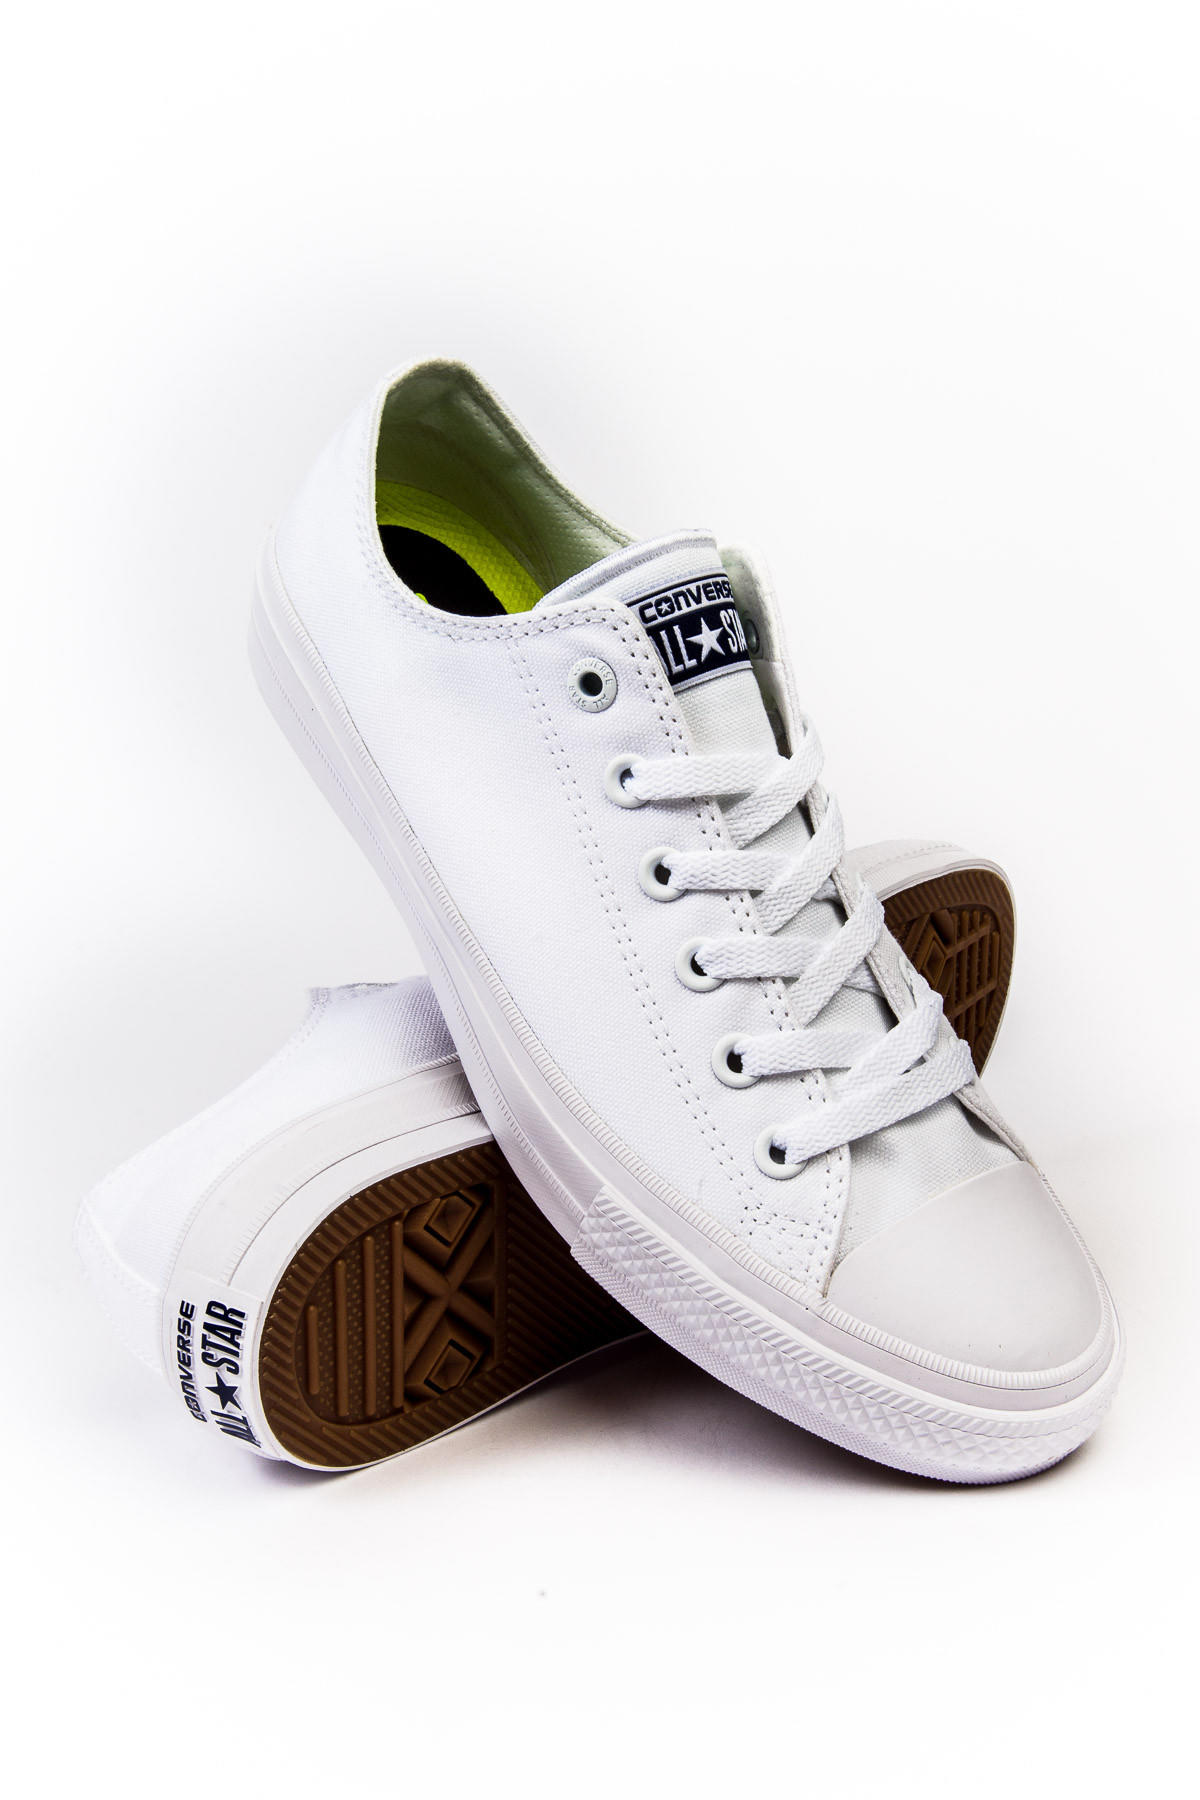 converse chuck taylor 2 leather white